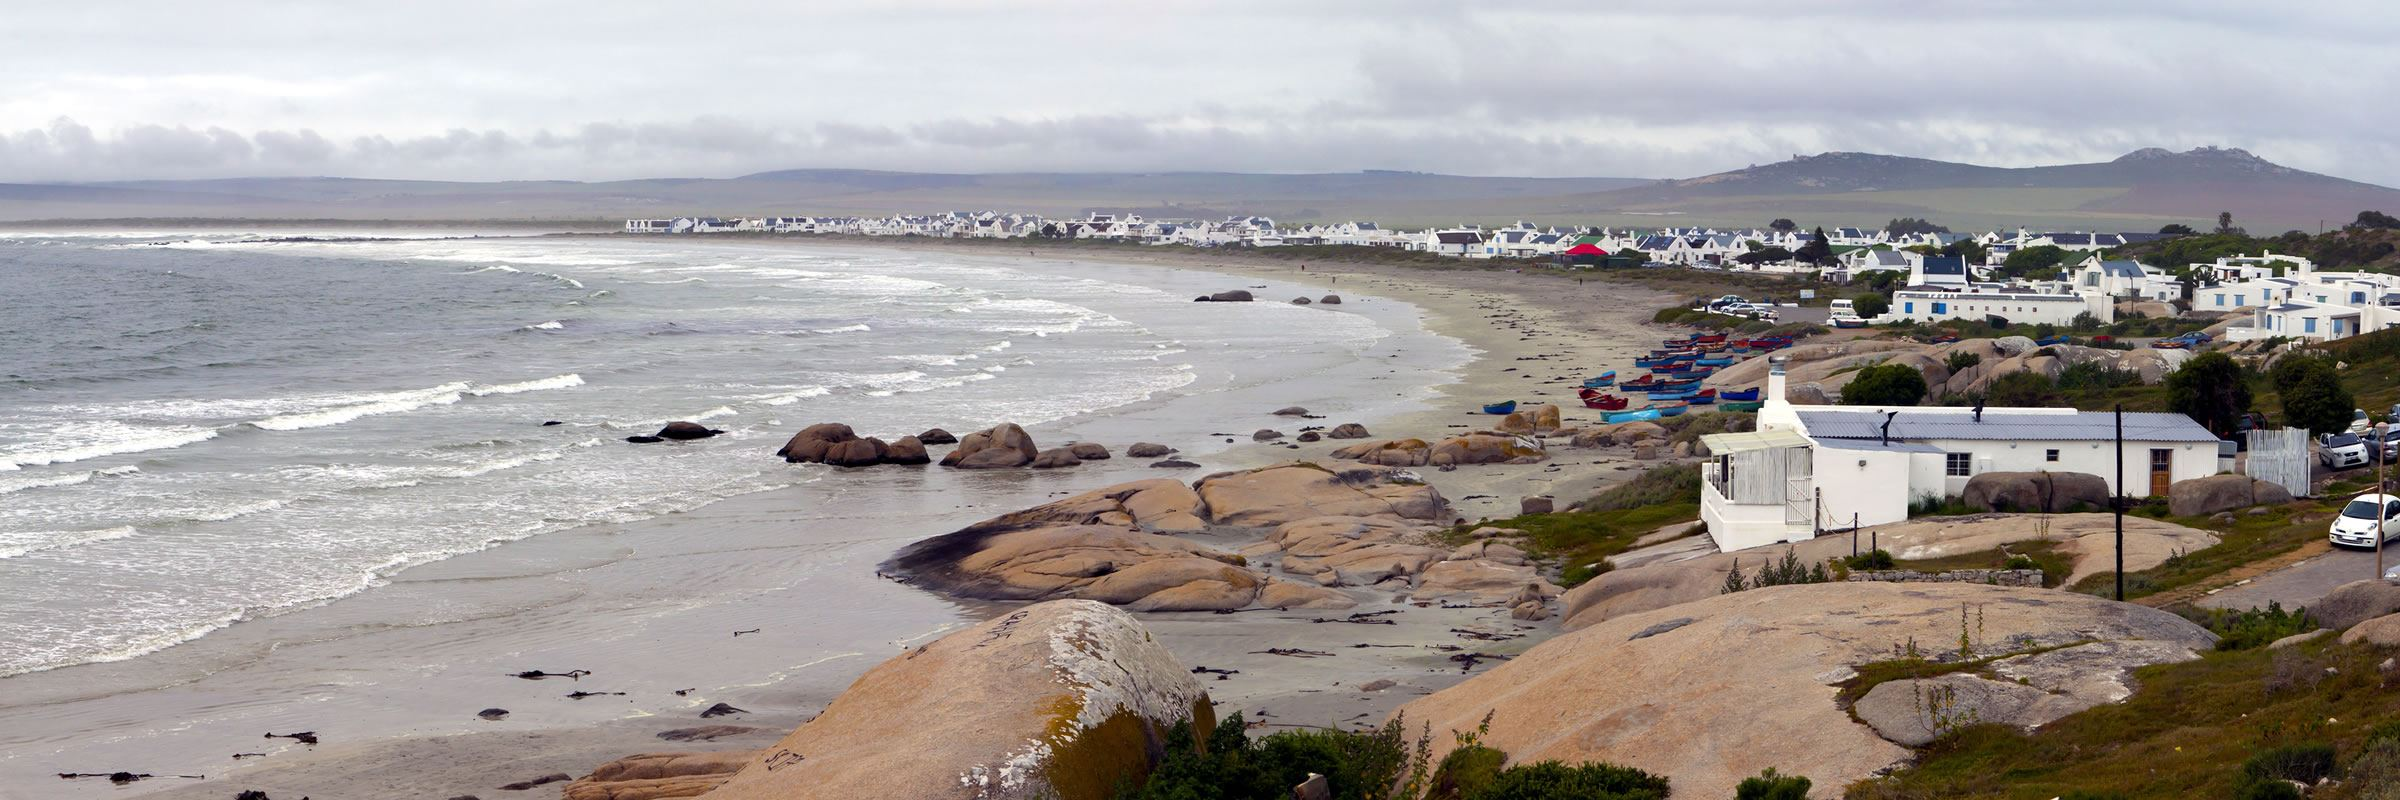 Visit Paternoster, South Africa